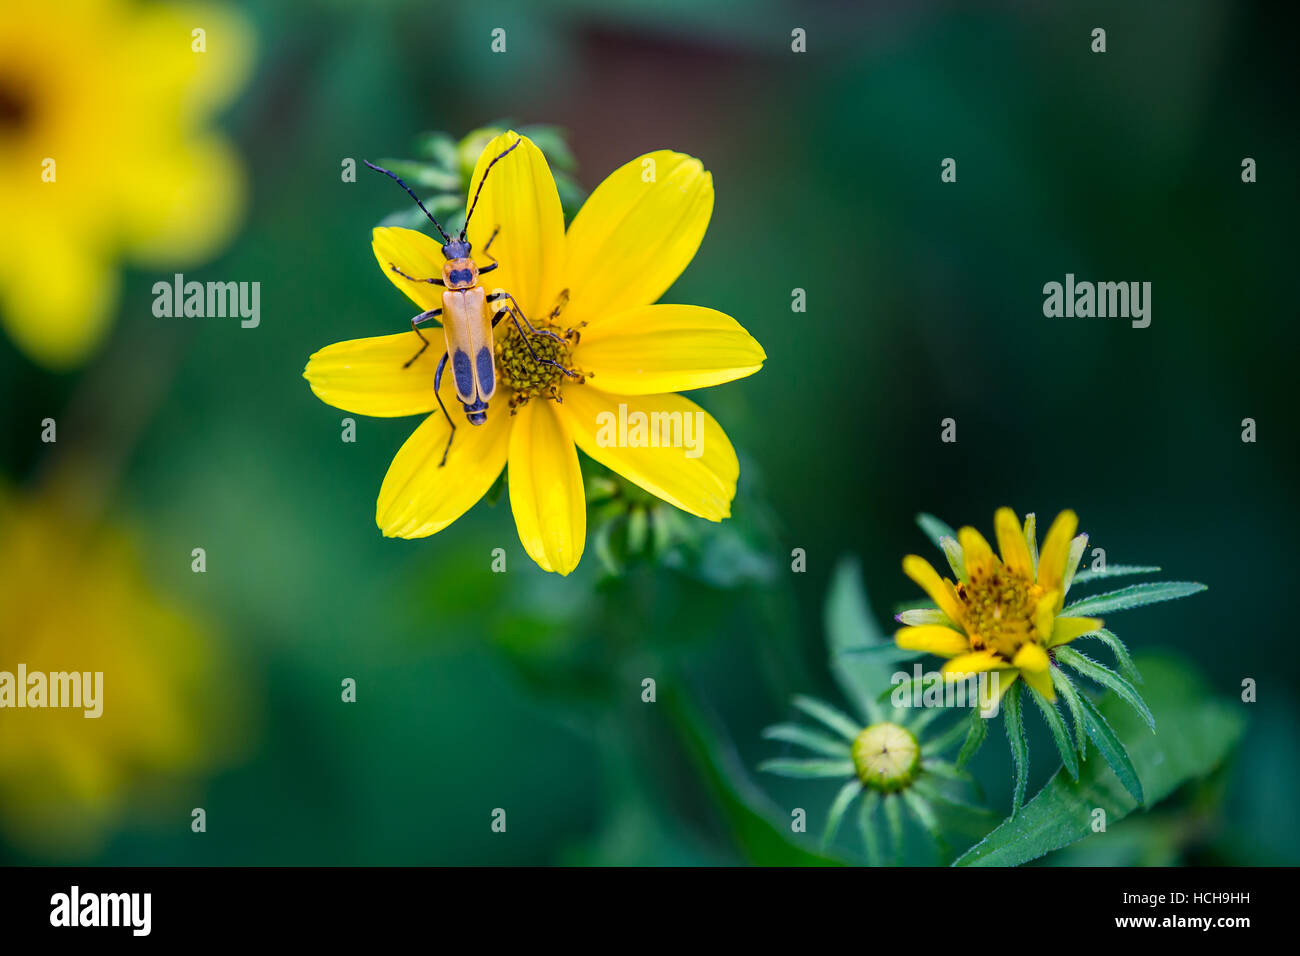 Orange and black Pennsylvania Leatherwing Beetle on the yellow petals of a Biden flower with more flowers de-focused - Stock Image